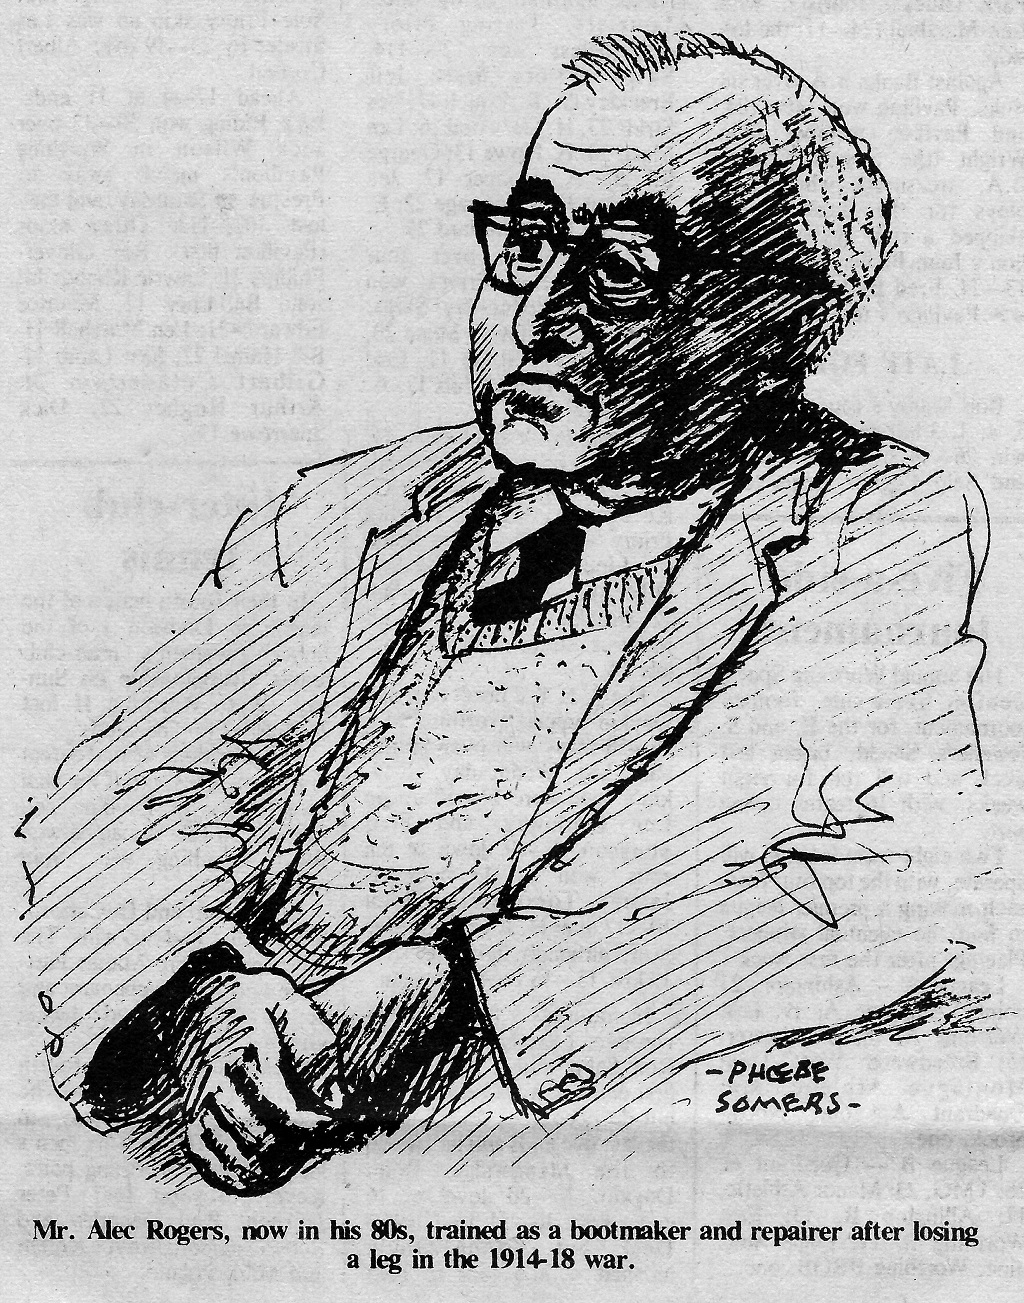 Drawing by Phoebe Somers, published in local newspaper about 1977